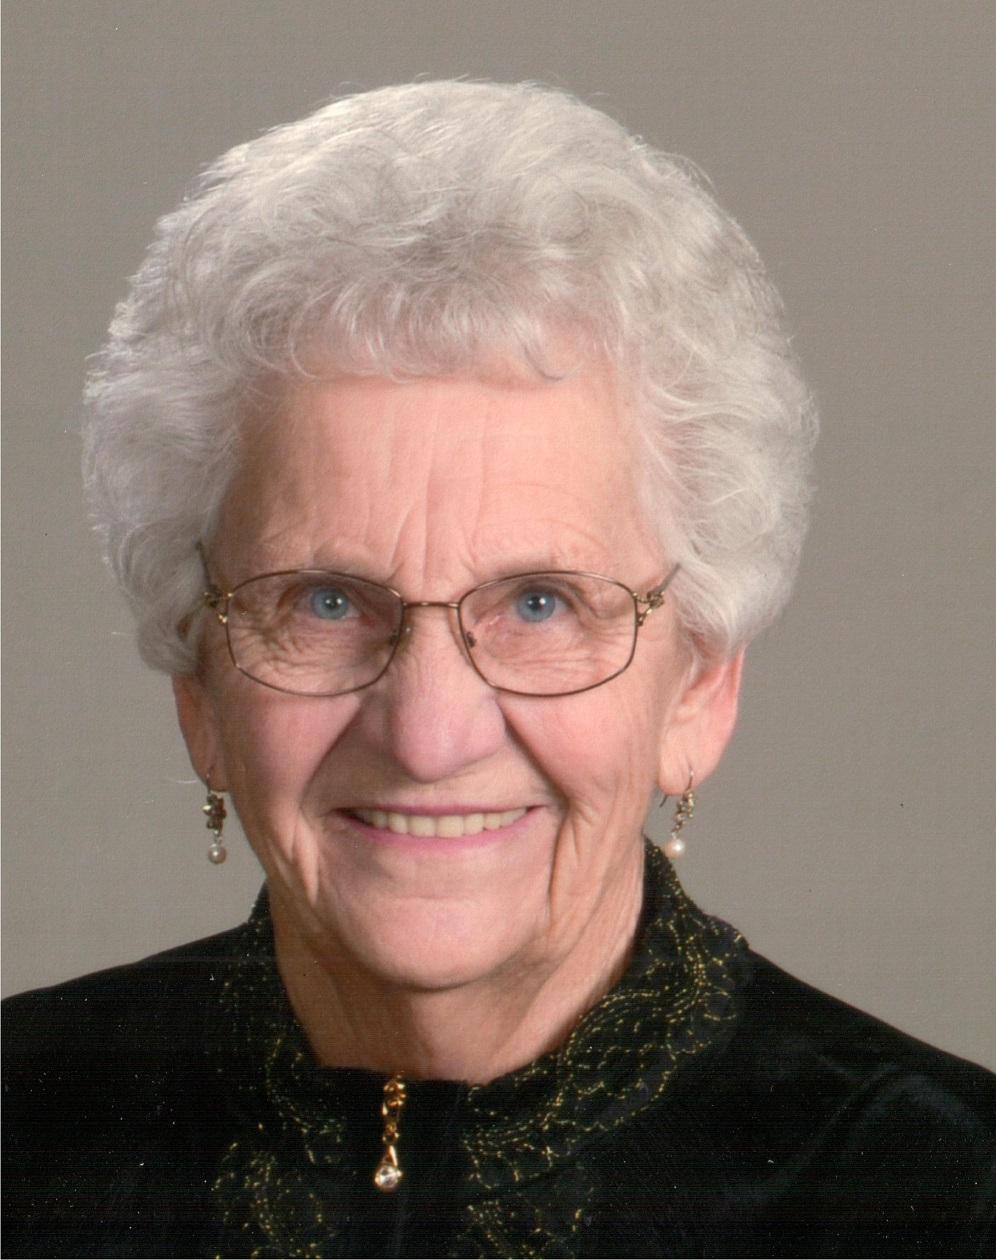 Barbara Ann Lottes, age 84 of Loogootee